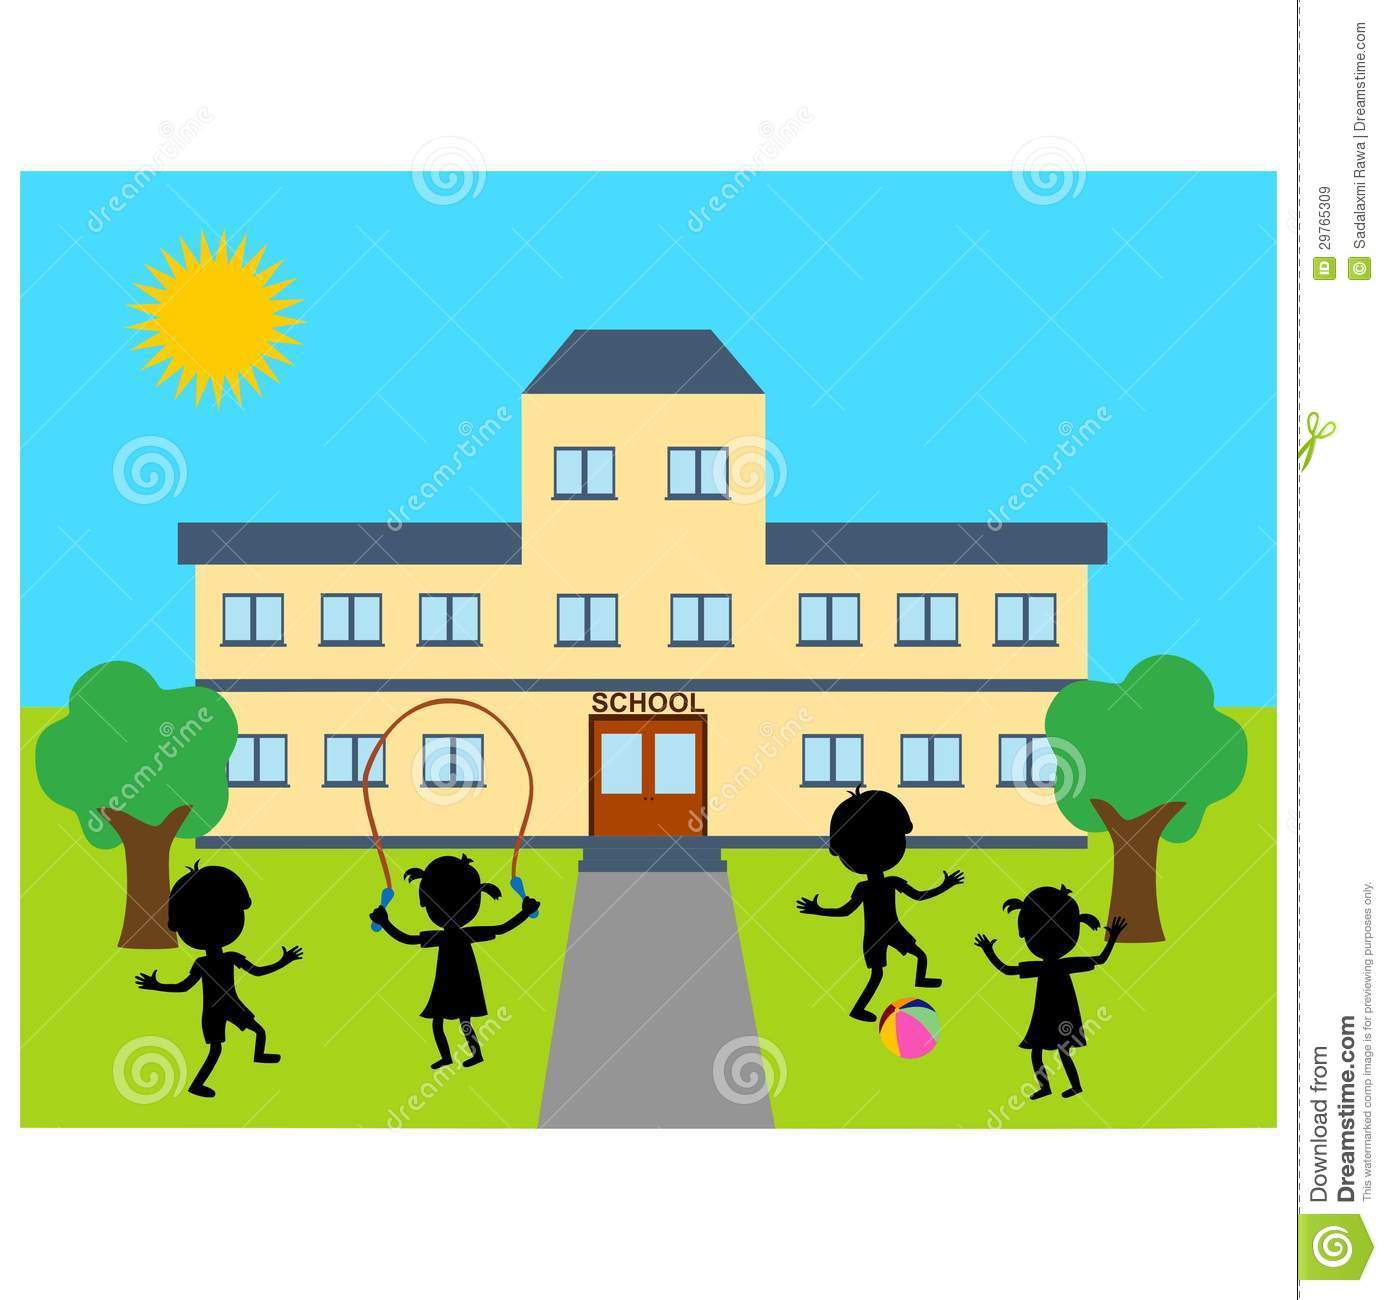 School Building Clipart Illustration Sch-School Building Clipart Illustration School Building Children Playing-15